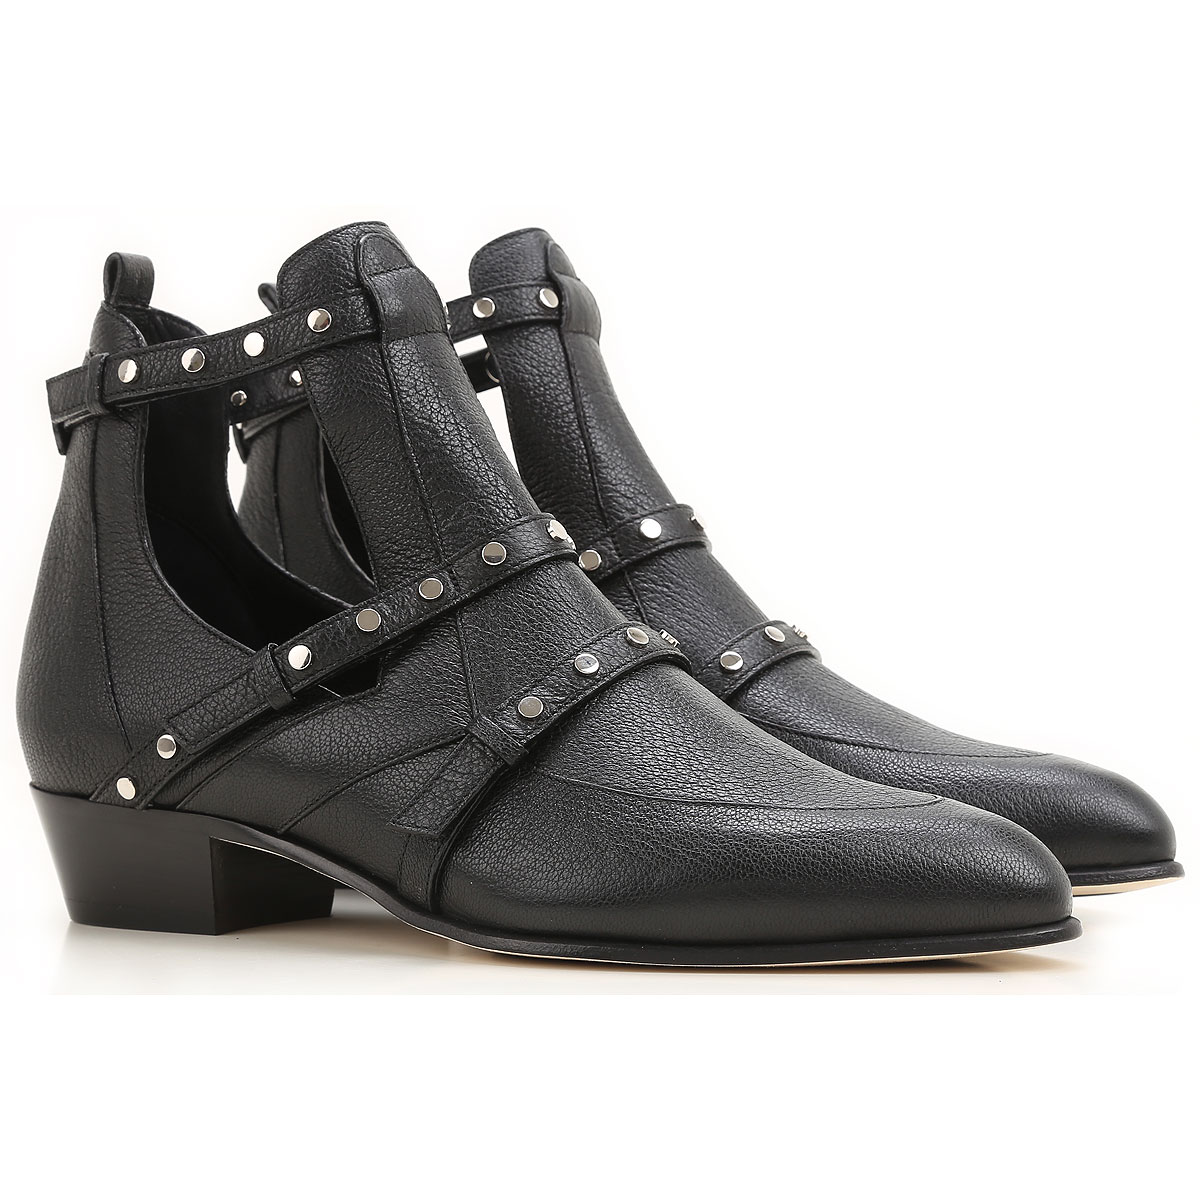 Jimmy Choo Boots for Women, Booties On Sale in Outlet, Black, Leather, 2019, 10 6 6.5 7 8.5 9